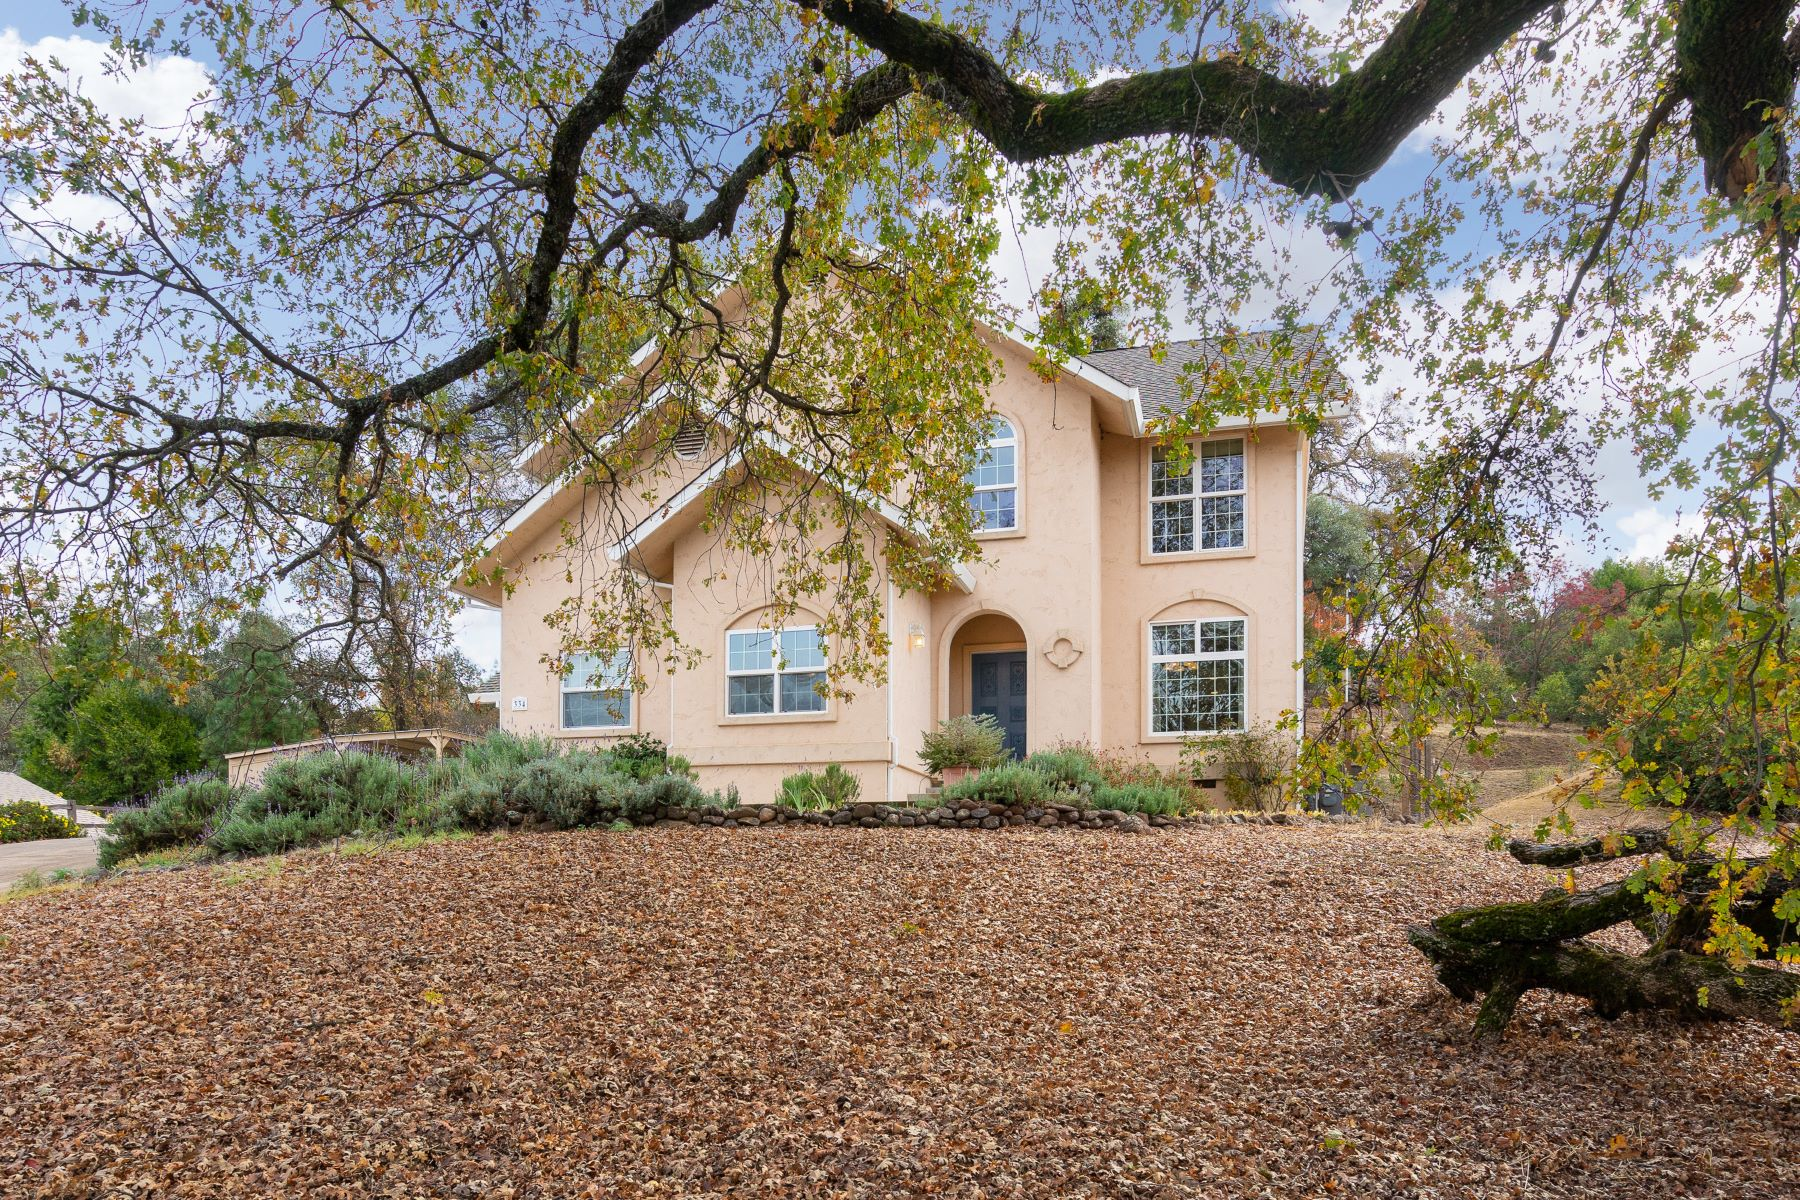 Single Family Home for Active at Charming home in very desirable Sutter Creek neighborhood! 334 N. View Court Sutter Creek, California 95685 United States